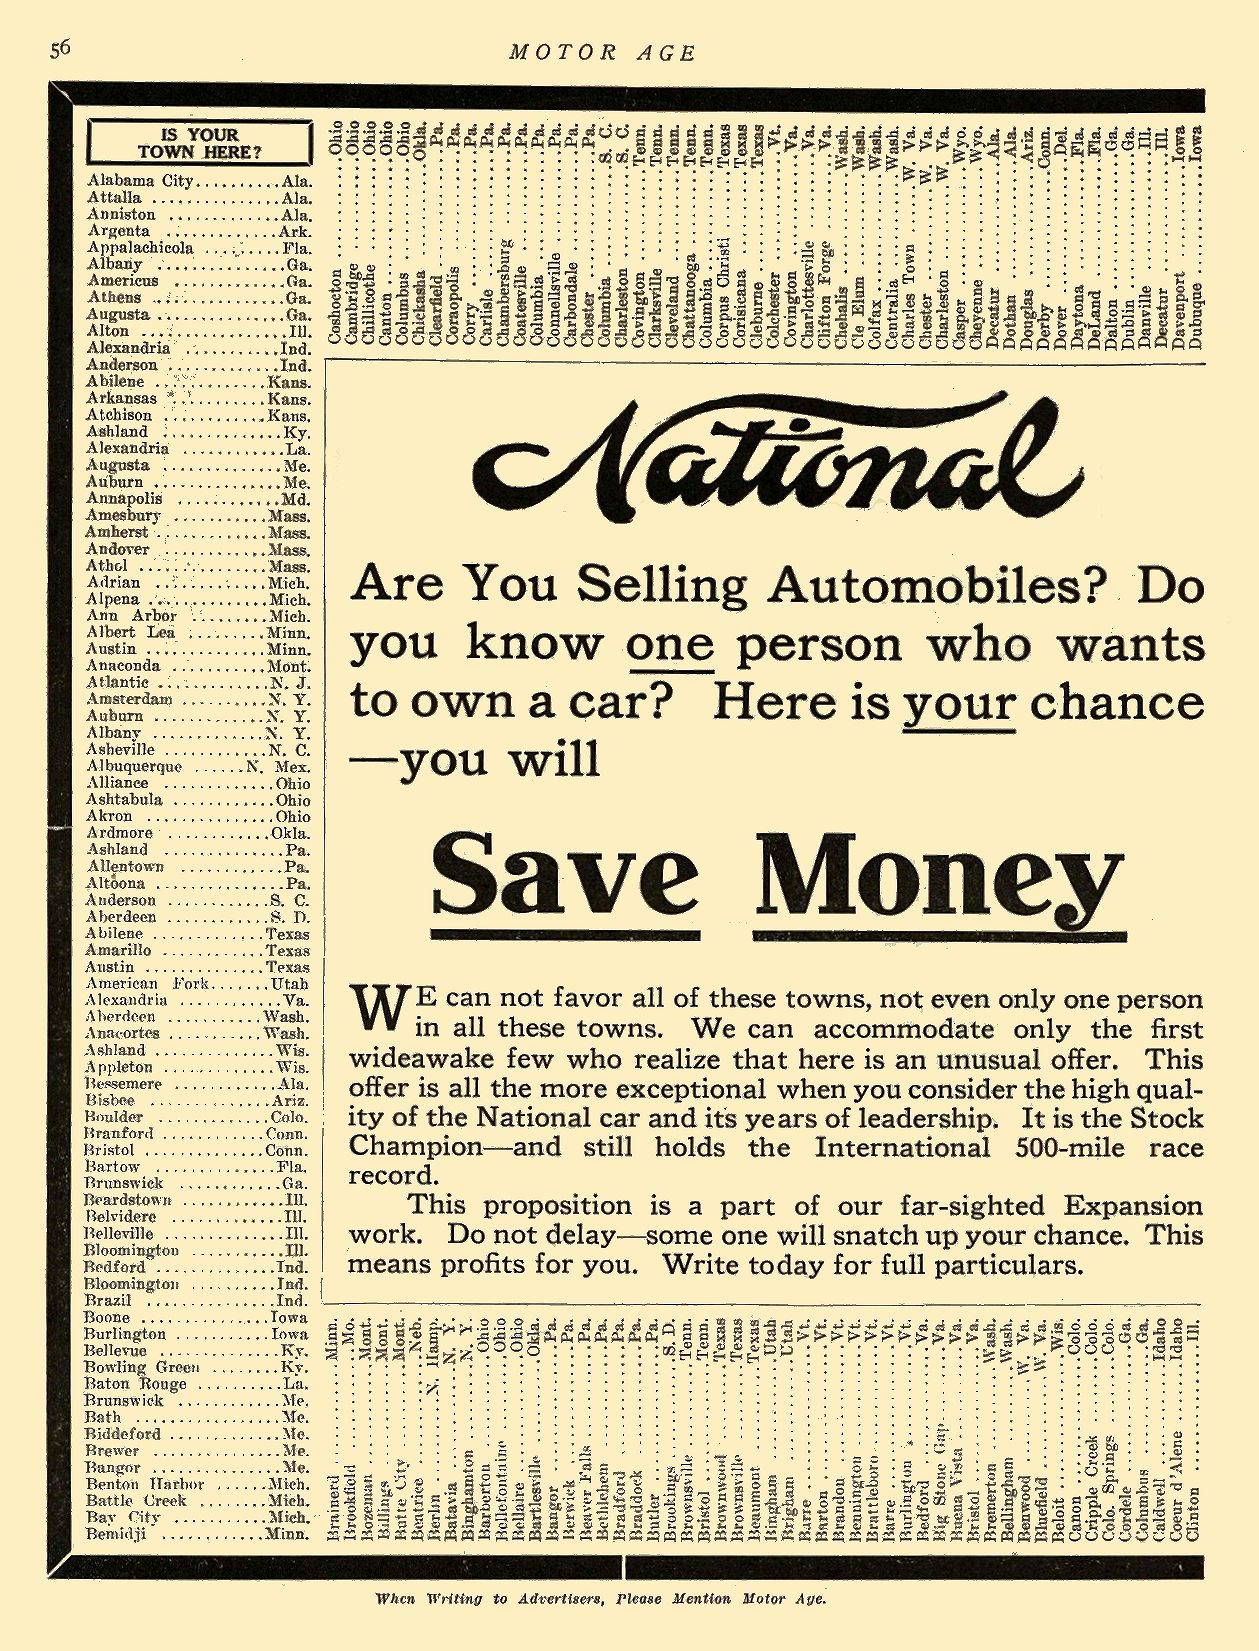 1913 7 3 NATIONAL National Save Money National Motor Vehicle Company Indianapolis, IND MOTOR AGE July 3, 1913 8.5″x12″ page 56